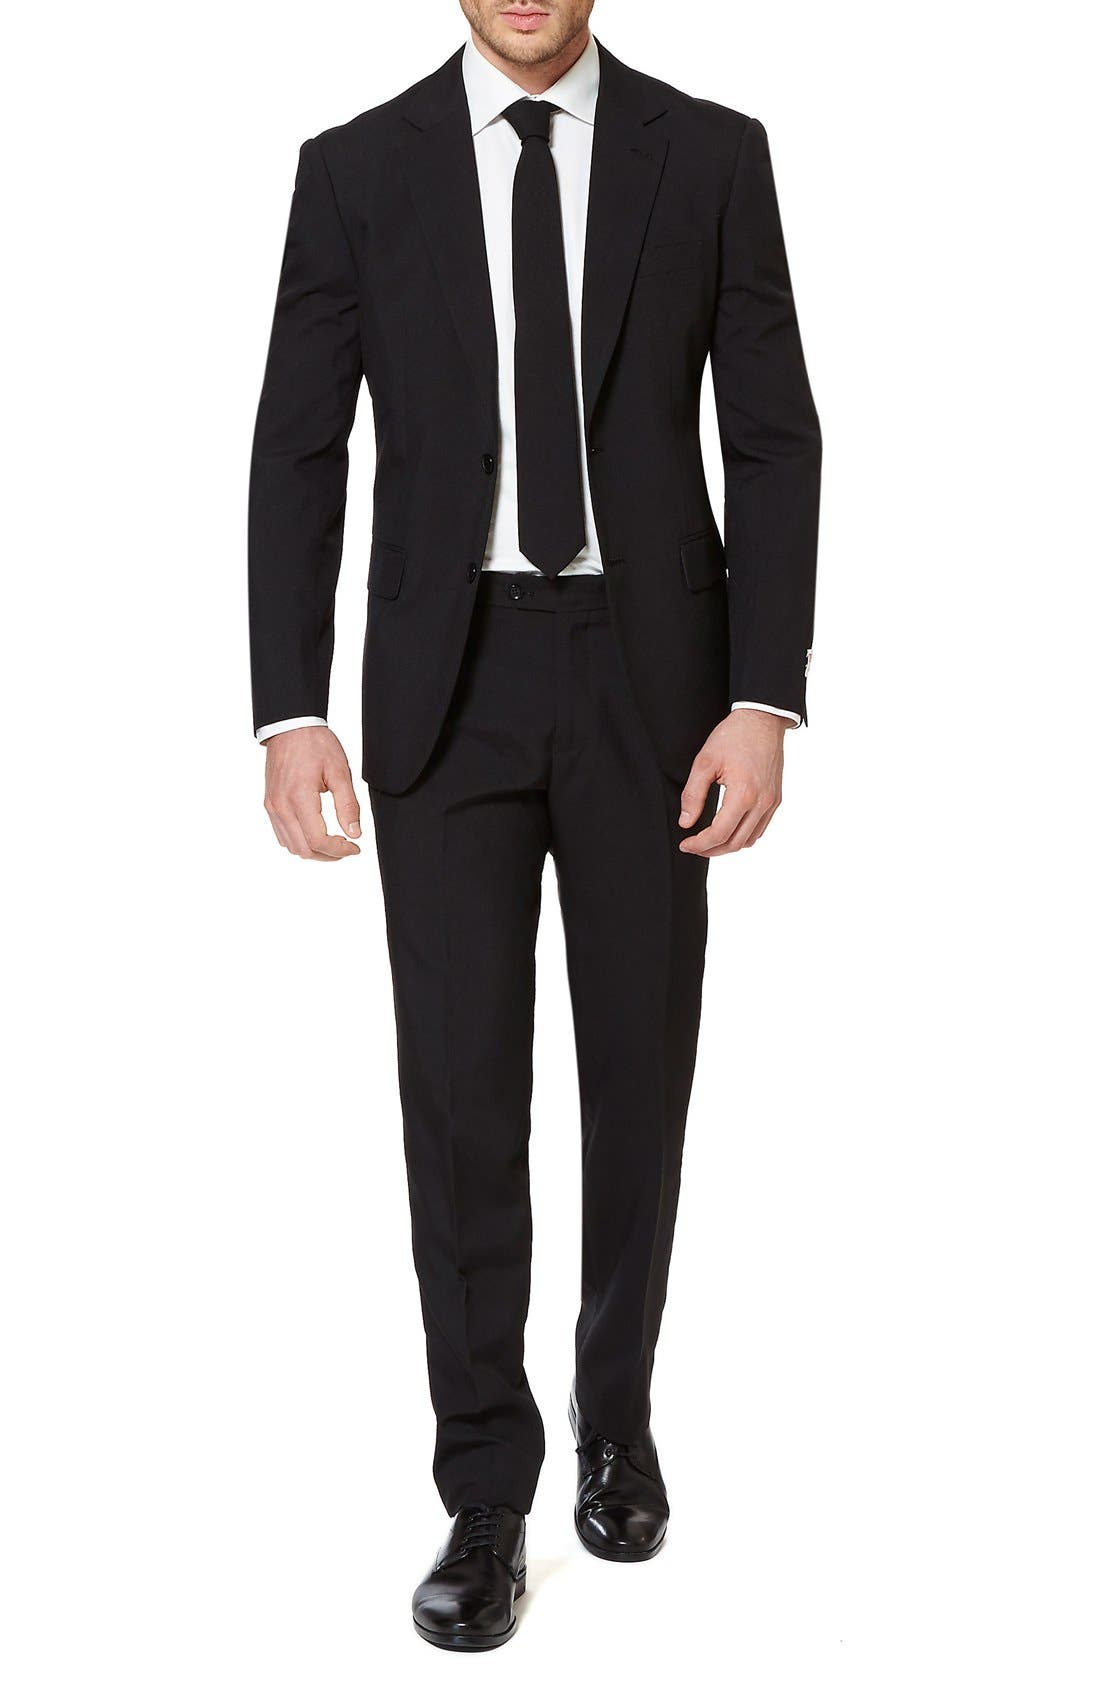 'Black Knight' Trim Fit Two-Piece Suit with Tie,                             Main thumbnail 1, color,                             001